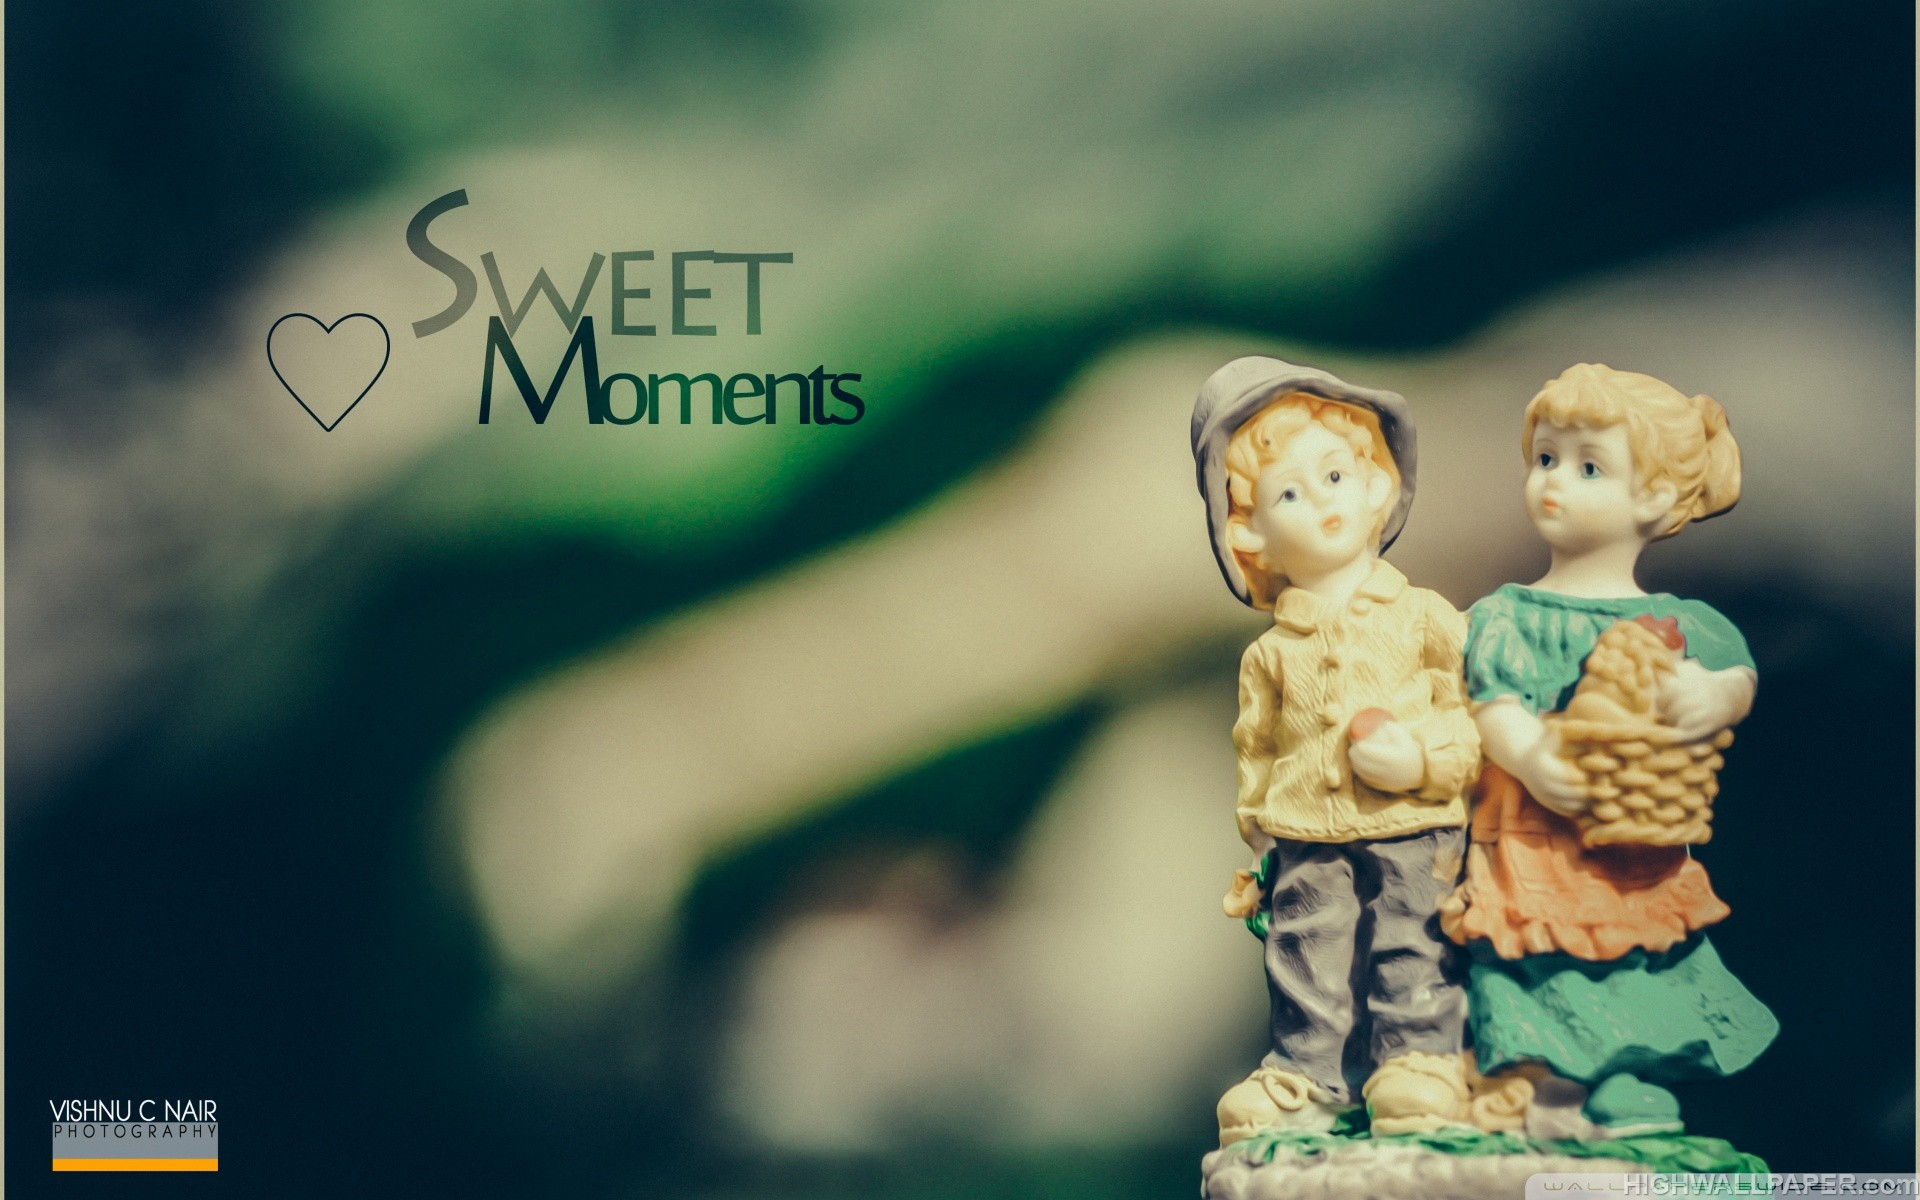 Sweet Moment Statue